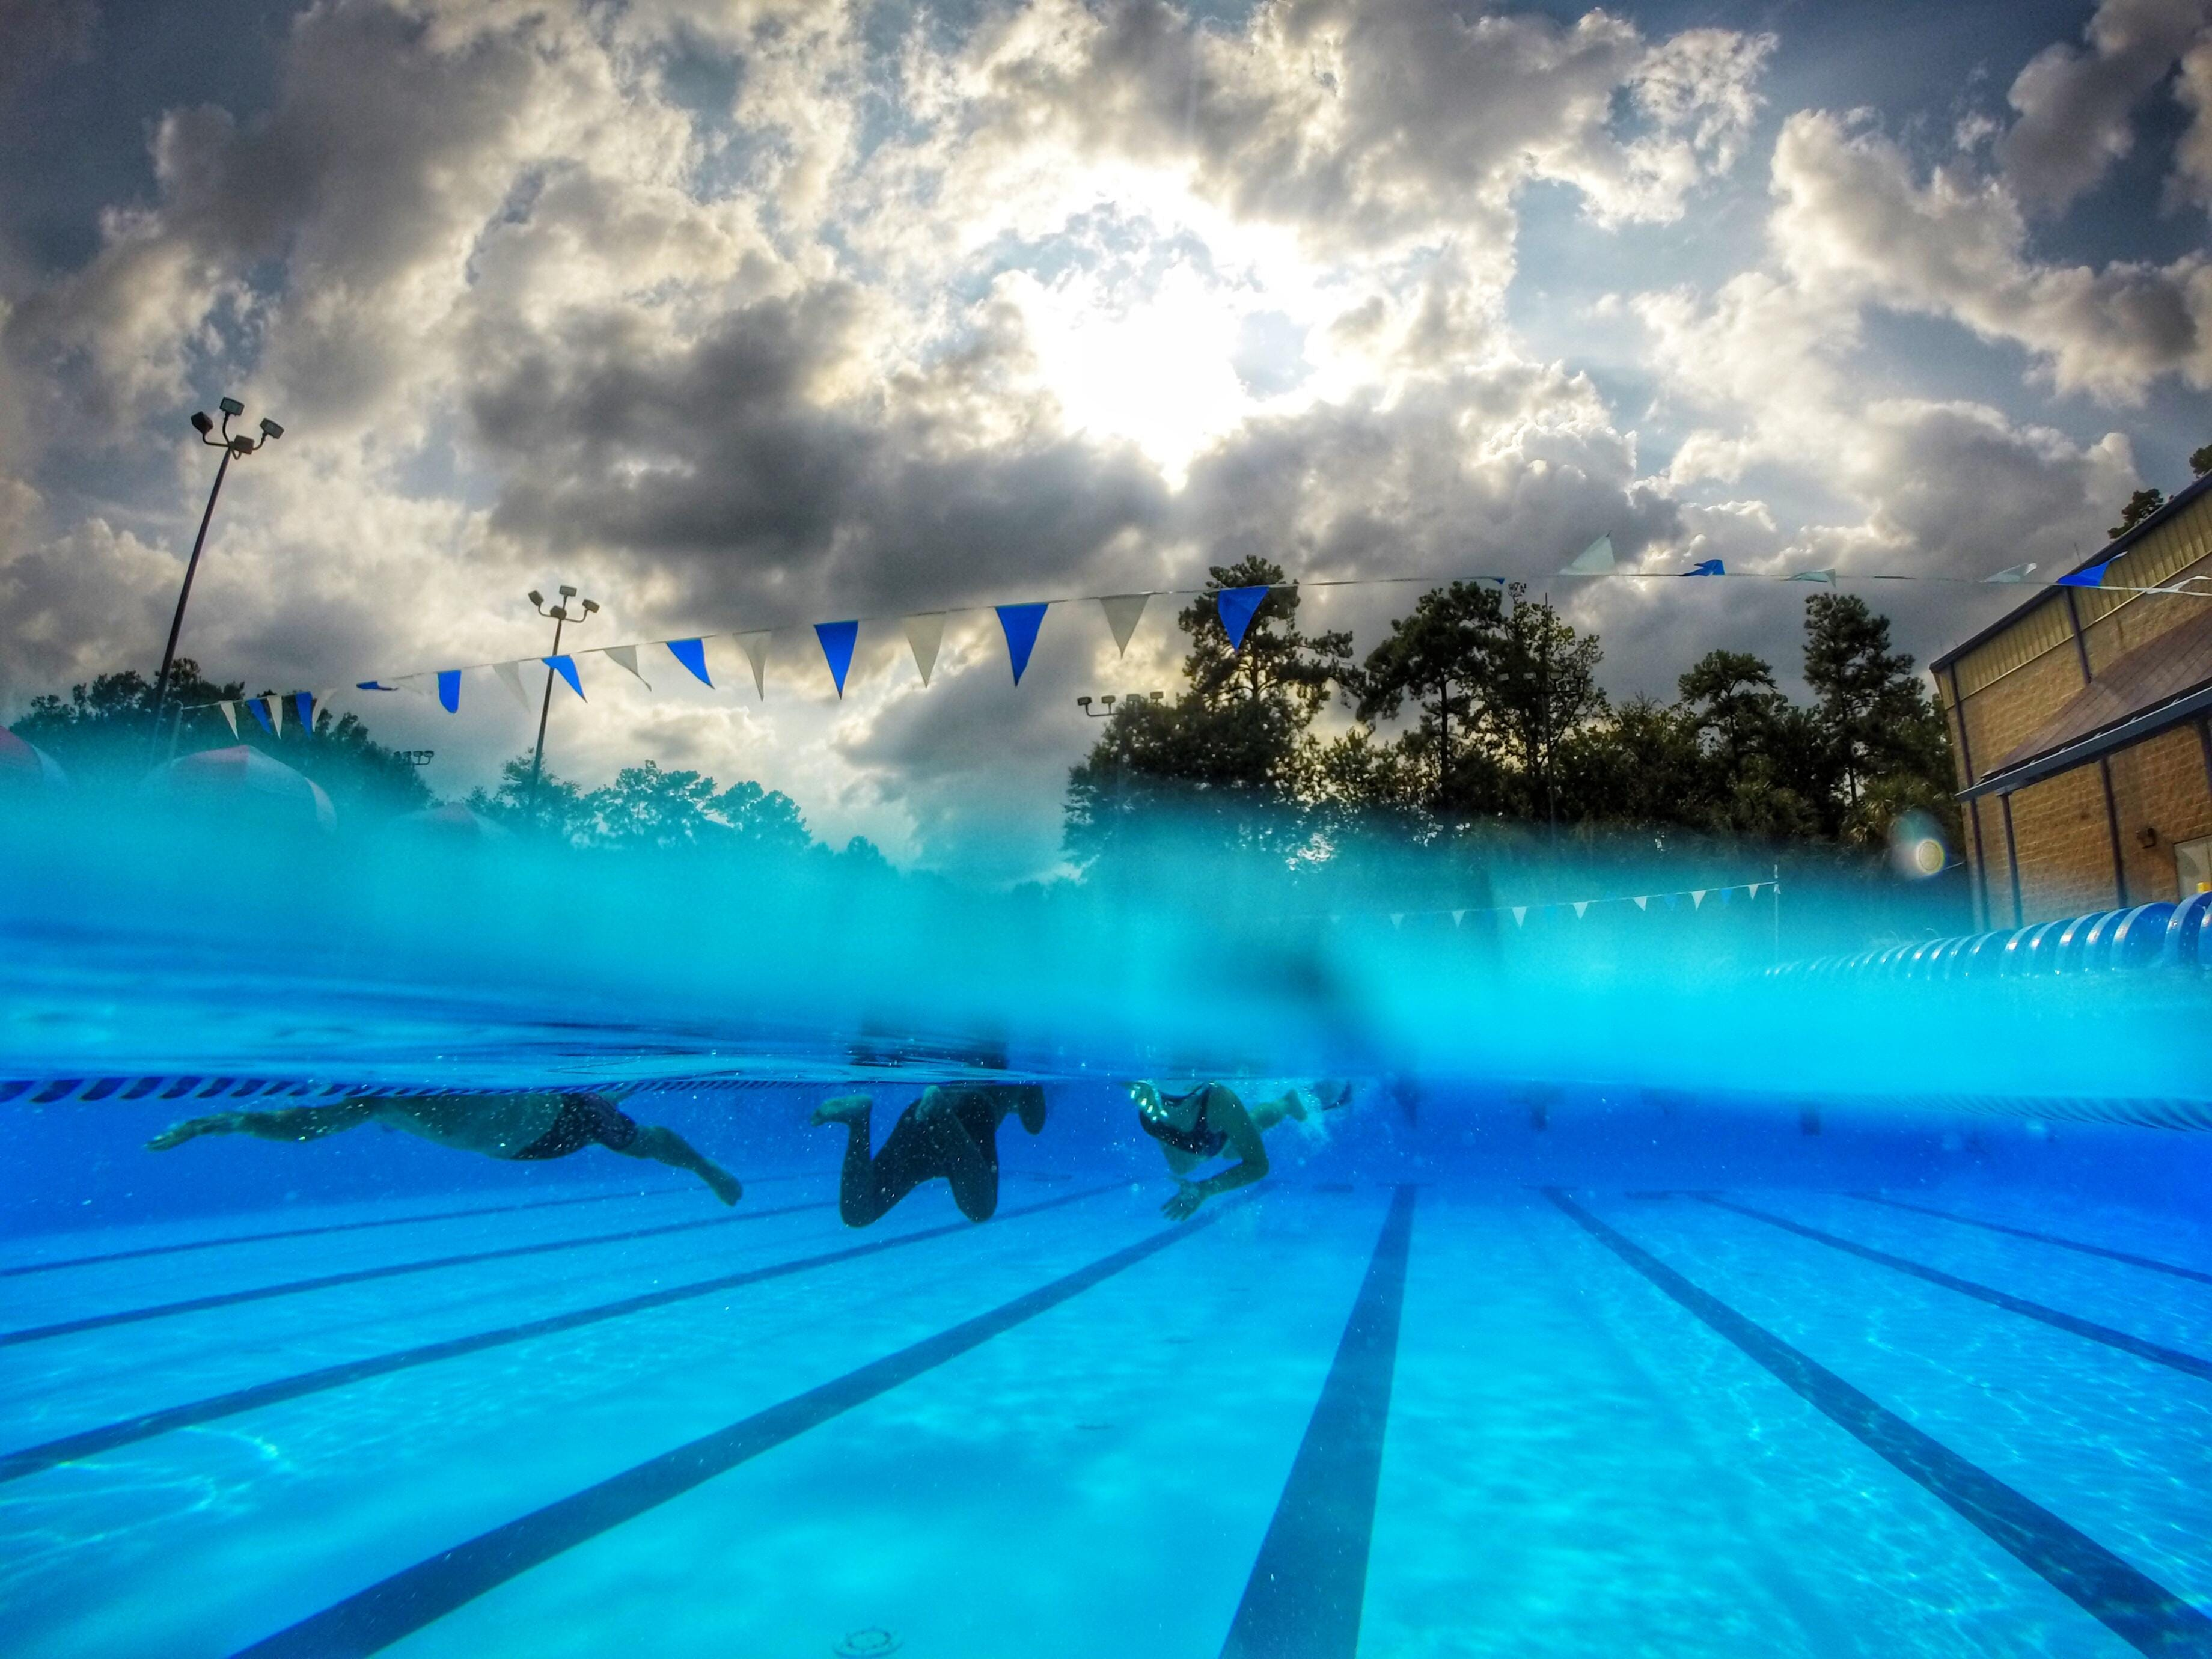 It was a beautiful day of swim practice for the Lincoln Trojans at Jack McLean Park pool recently.